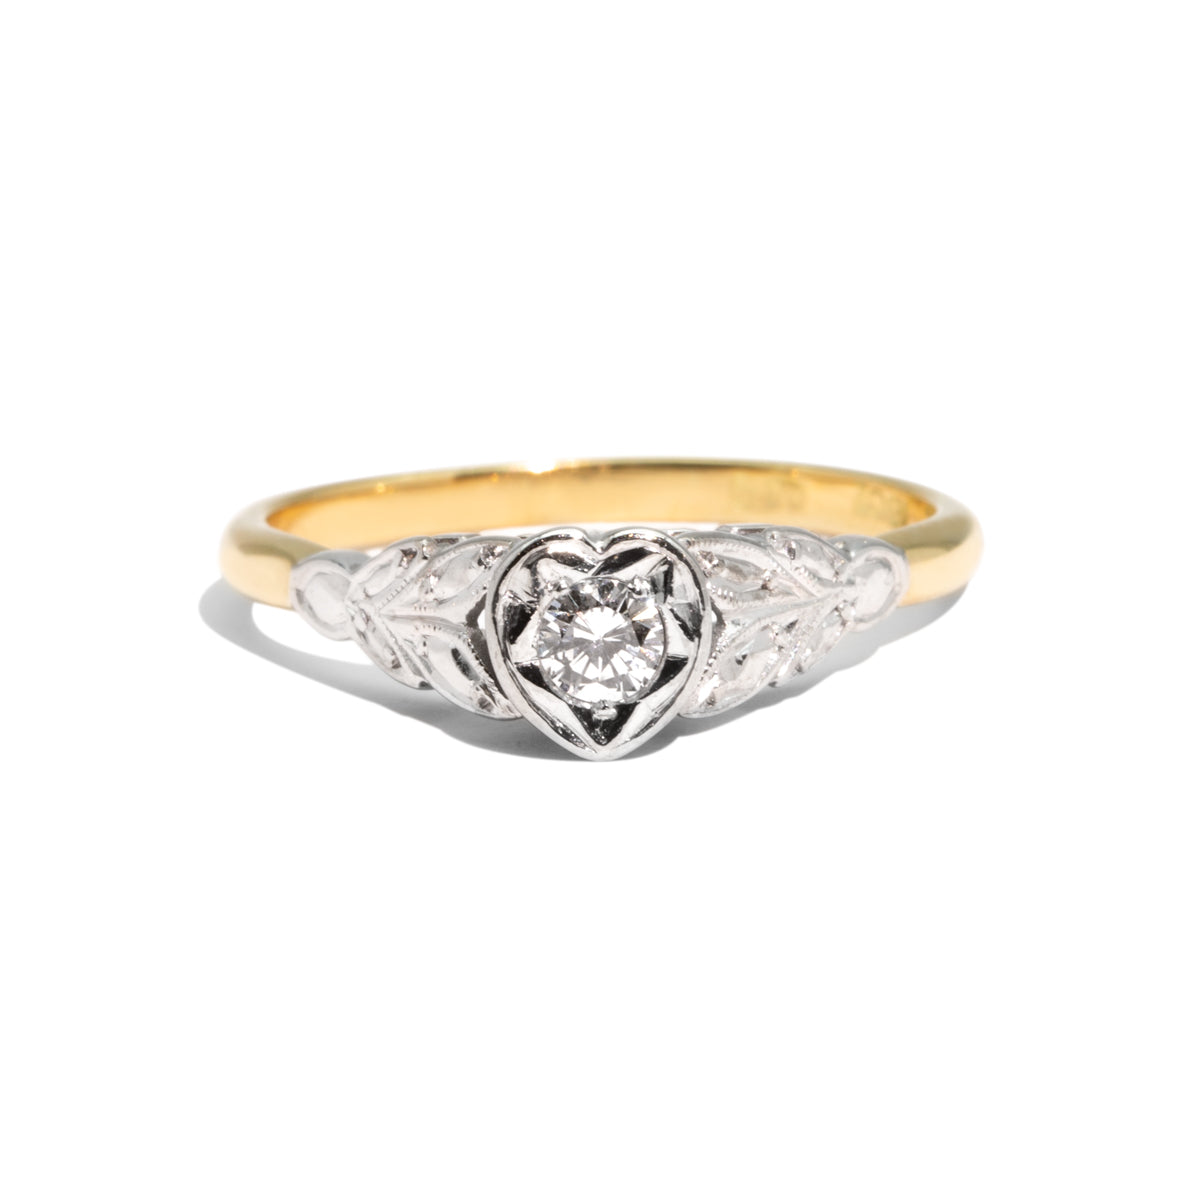 The Joy Vintage Diamond Ring